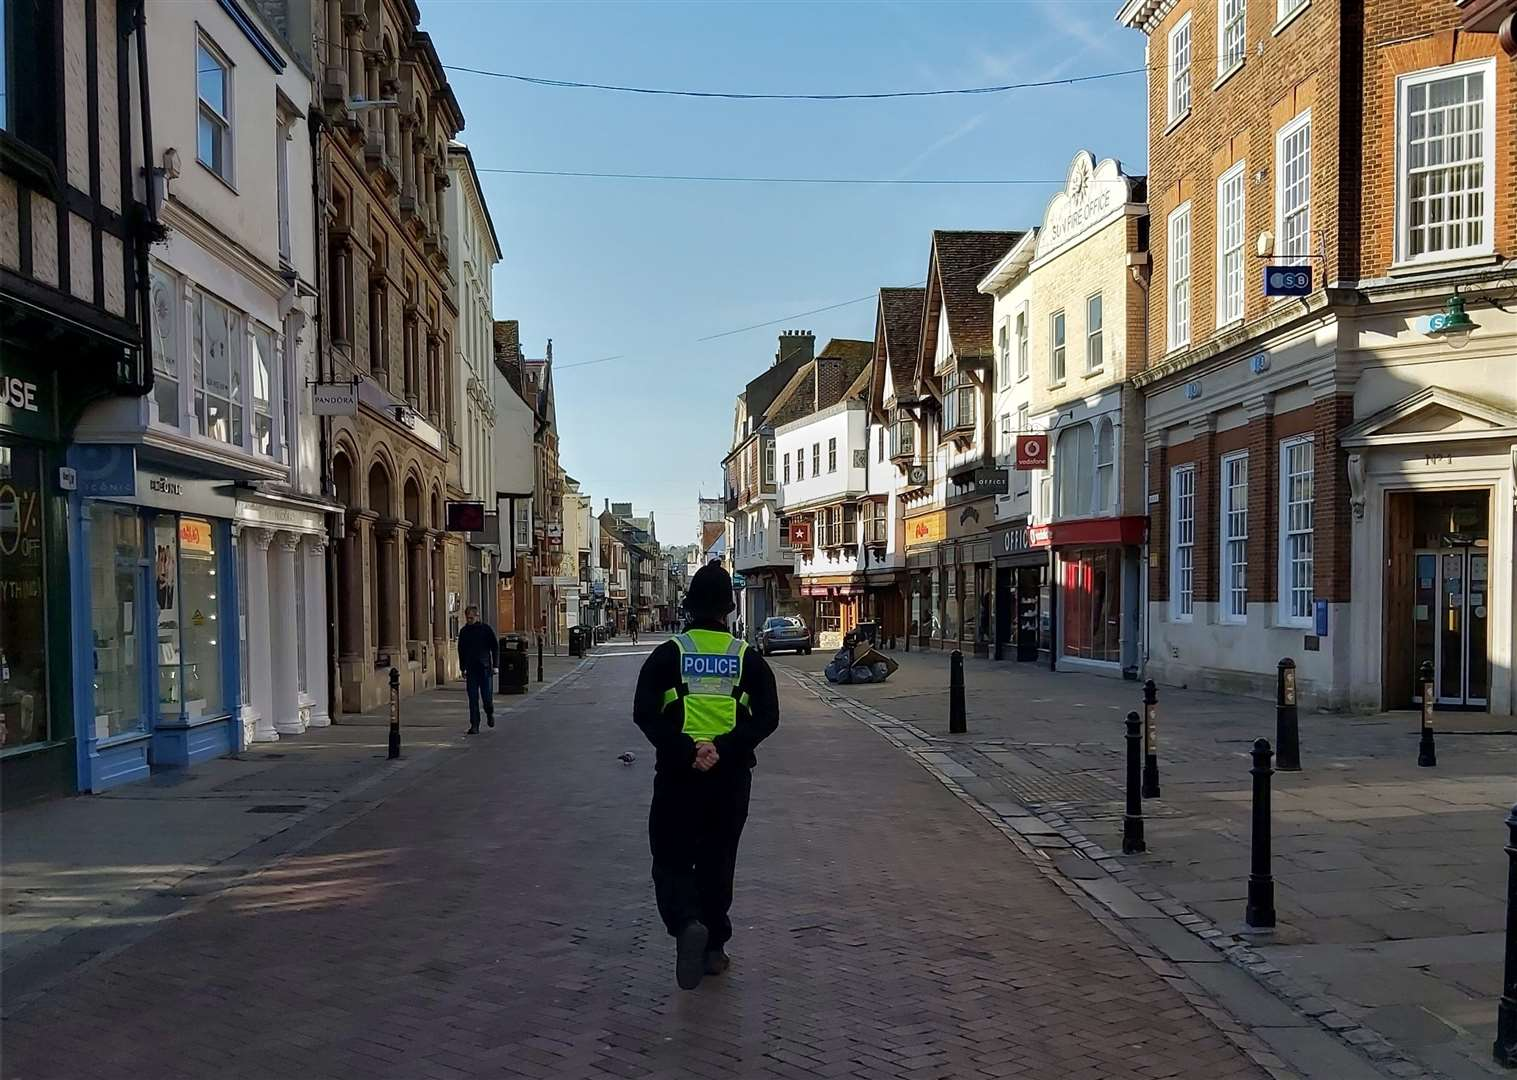 People in Canterbury diligently observed the social distancing rules on Tuesday. Picture: Police in Canterbury / Twitter